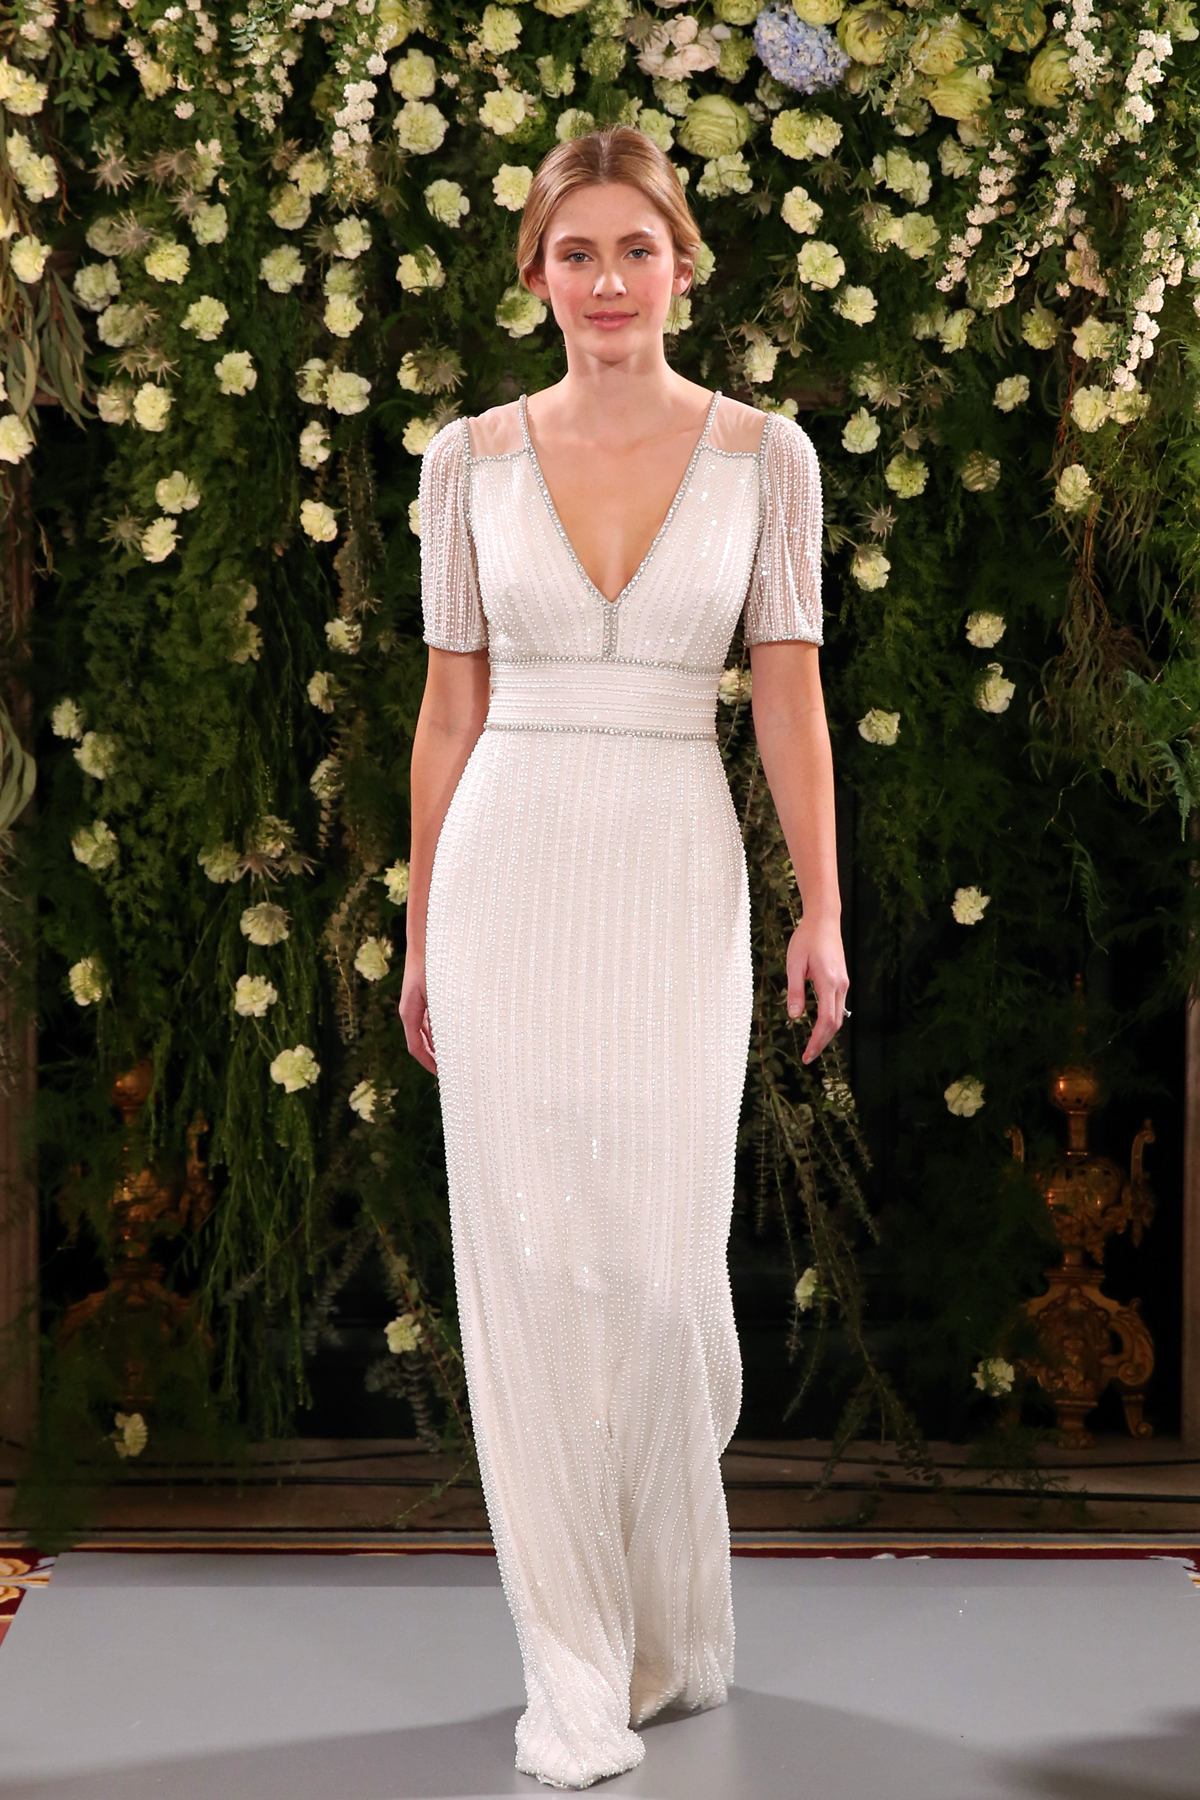 755e20b736c33 Jenny Packham Introduces her 2019 Bridal Fashion Collection | Love ...